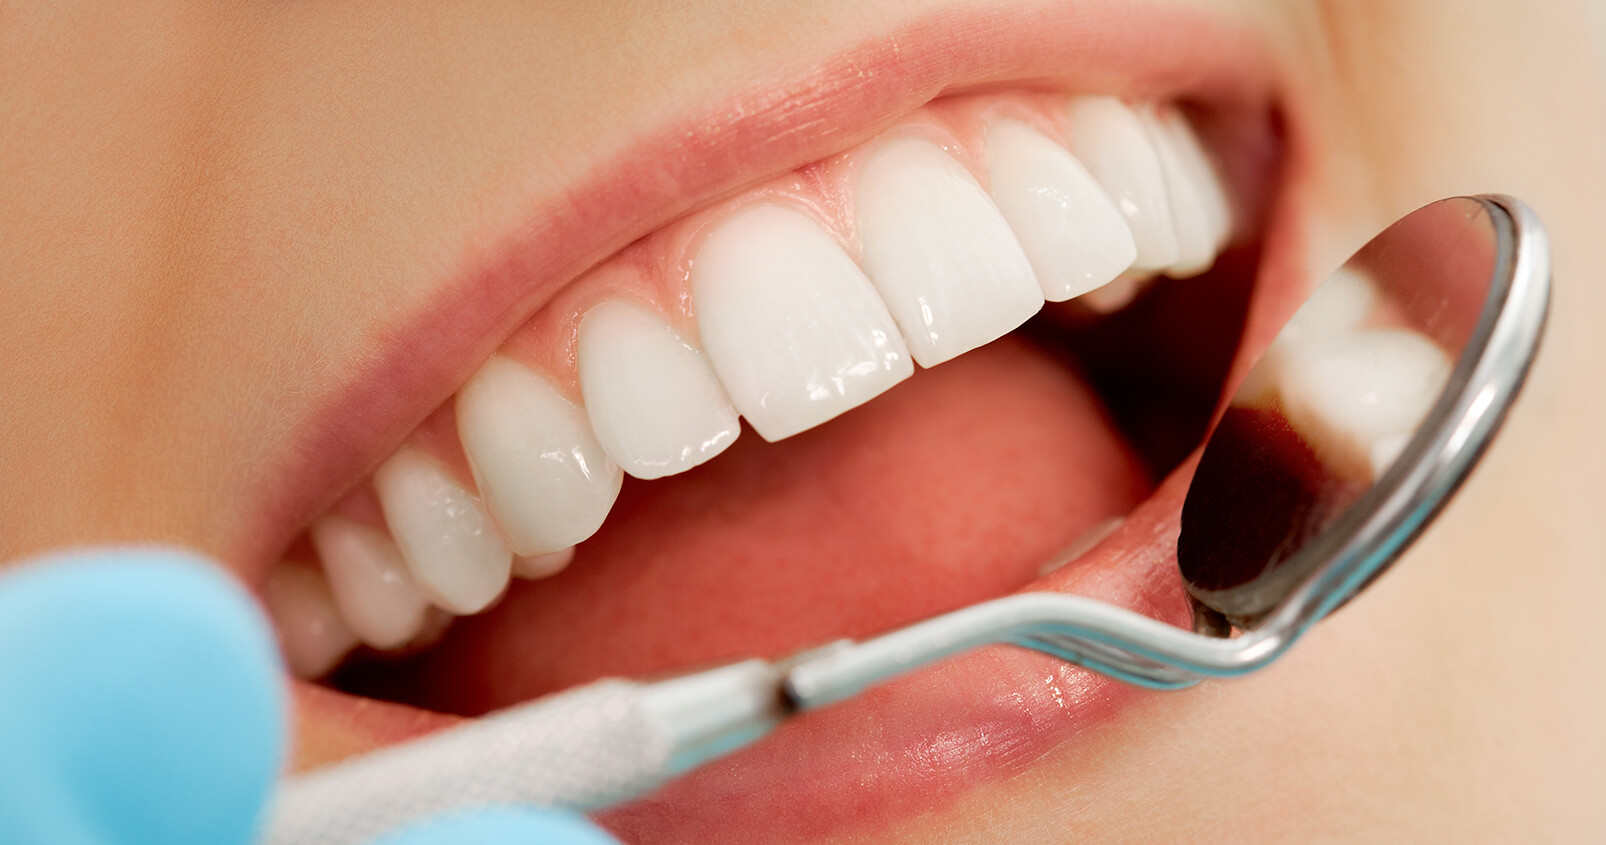 Get a Noticeably Whiter Smile, Safely, with Teeth Whitening Treatment at Our Dental Office in Azusa, CA Area